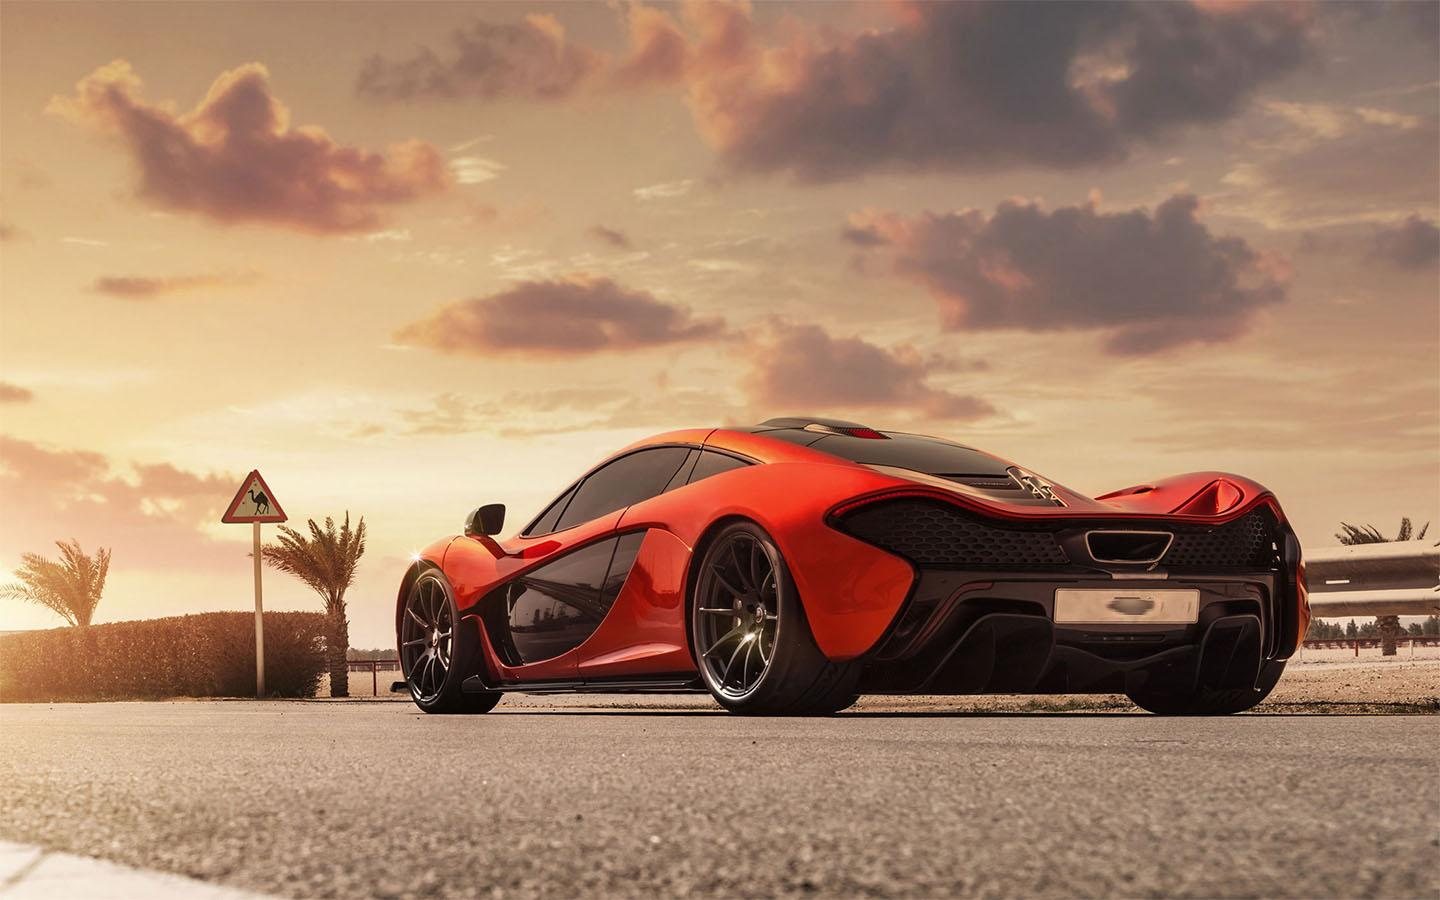 4k Wallpapers Exotic Super Sports Cars Car Wallpaper Android Apps On Google Play